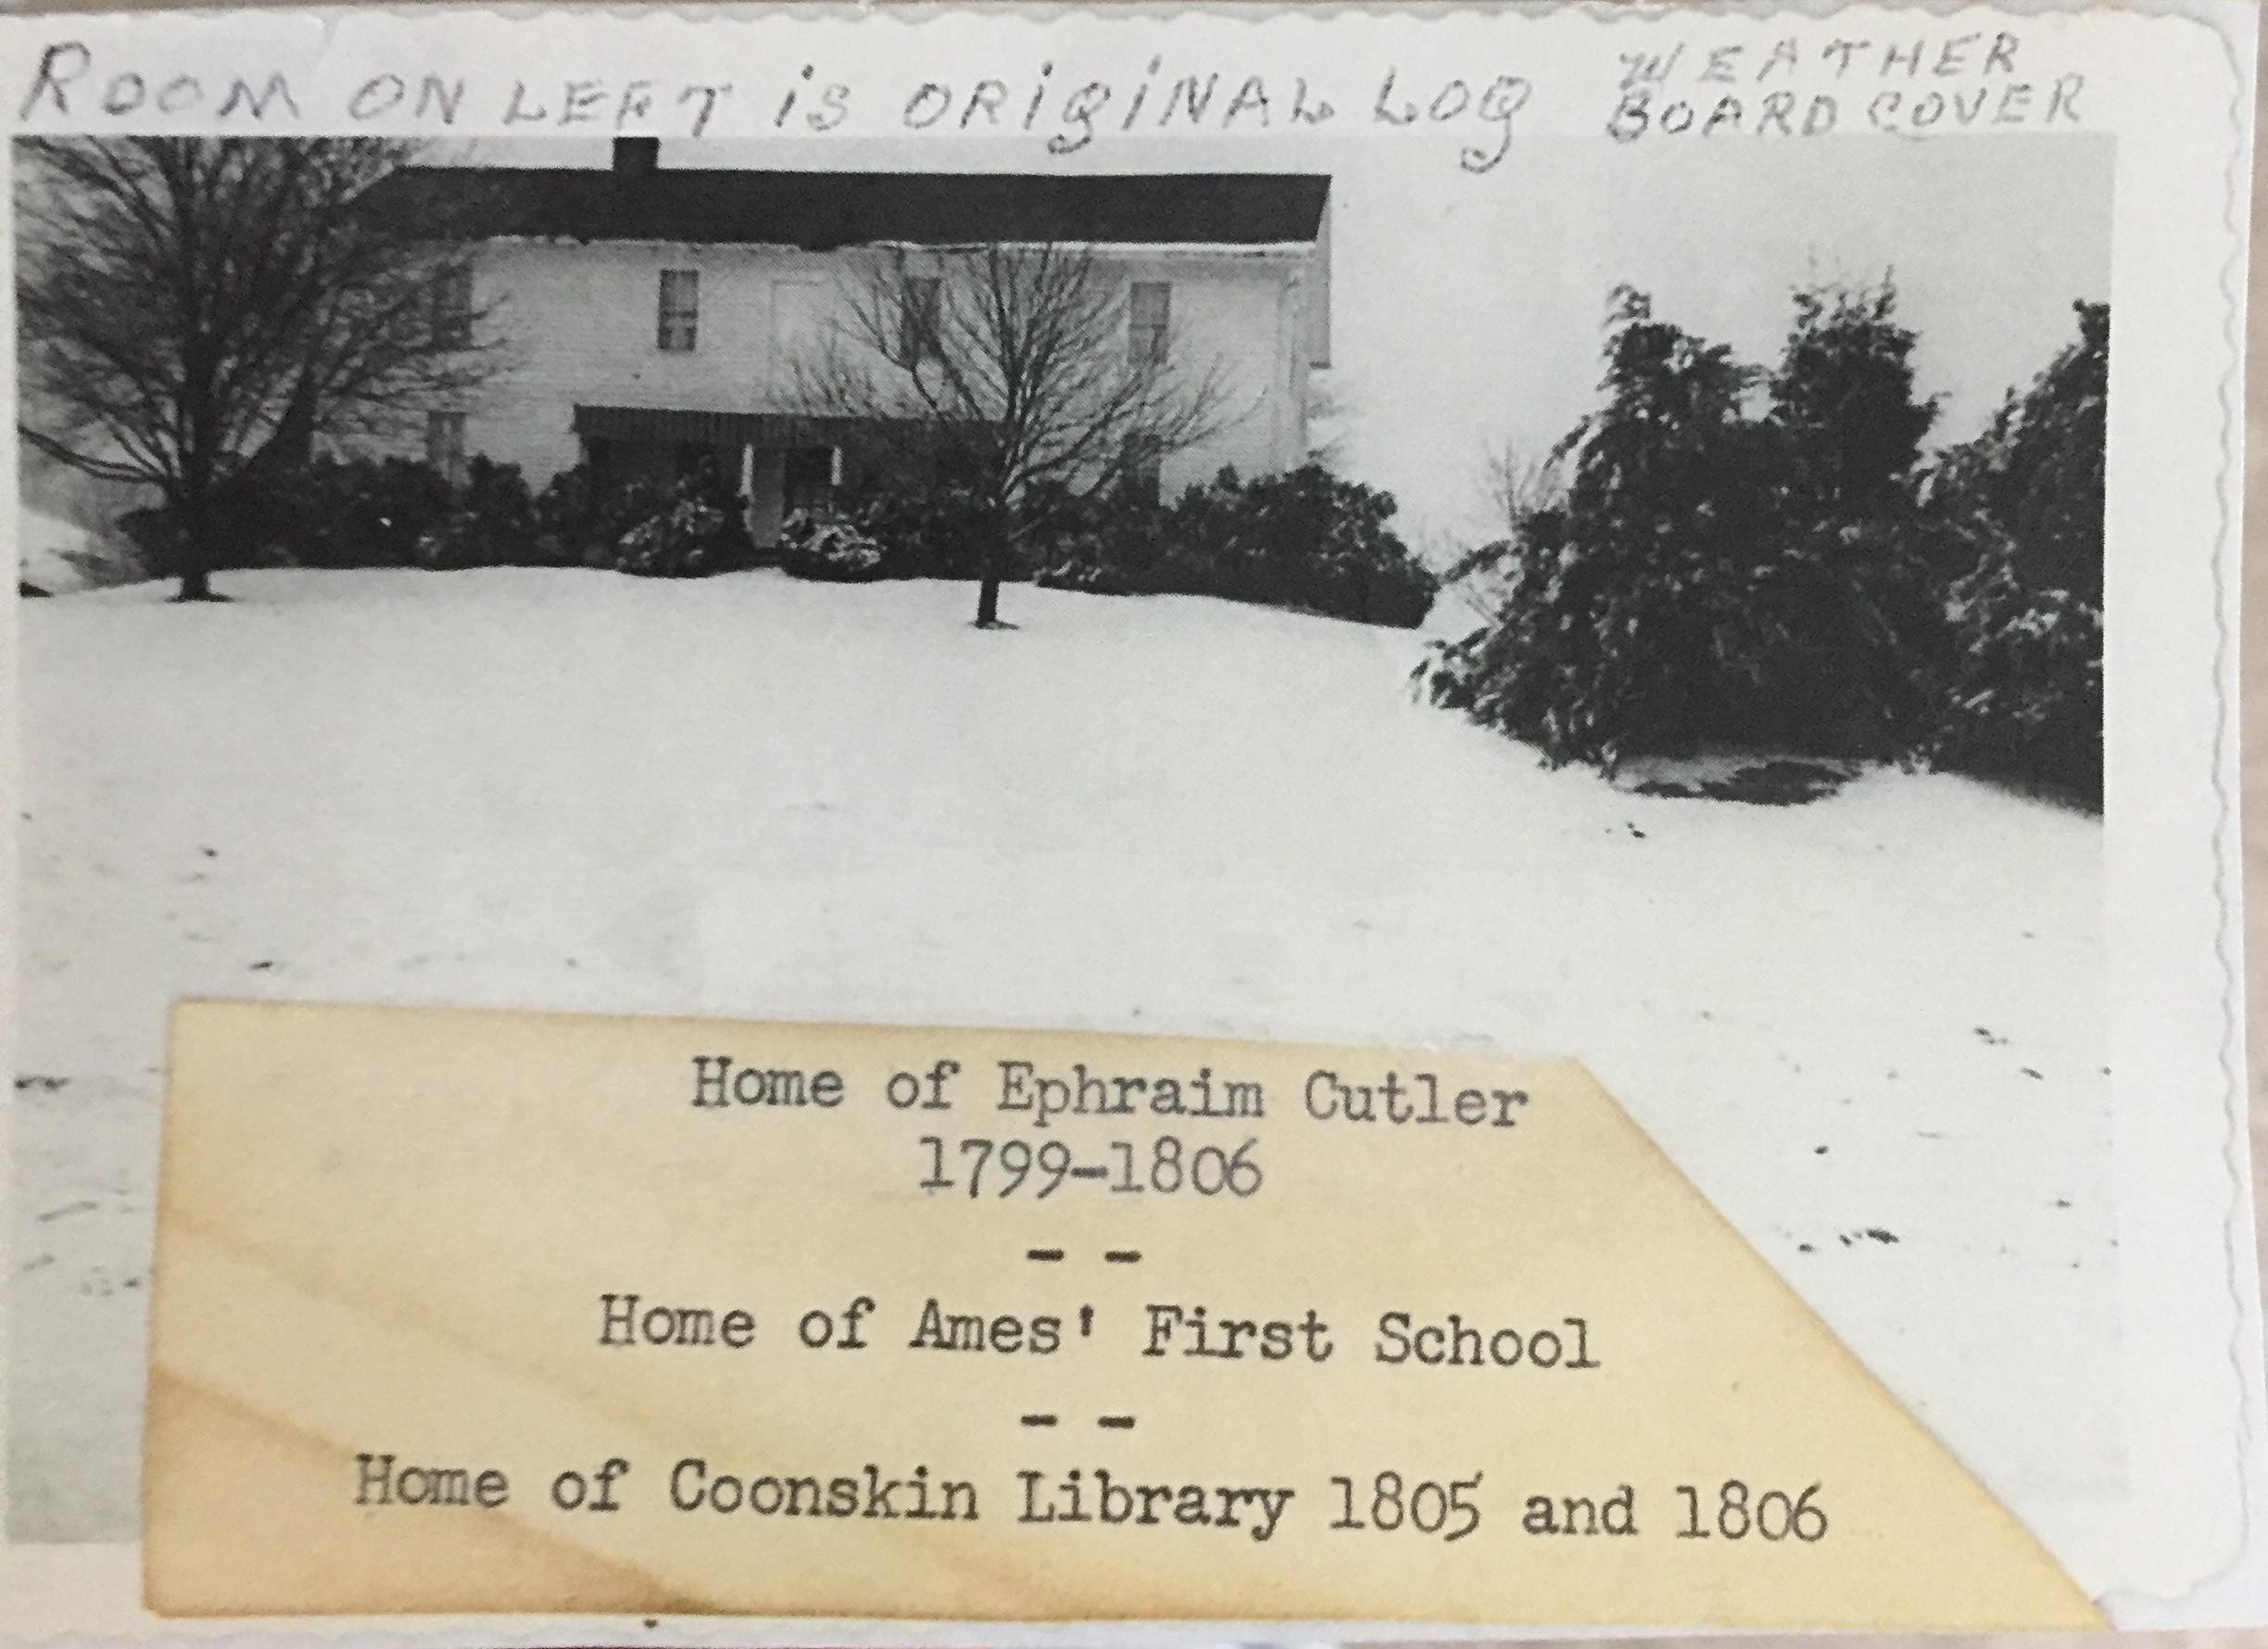 This is a copy of the original photo taken in 1930 of Ephraim Cutler's house, which housed the Coonskin Library in the first years of its opening, 1805-1806. Photo courtesy of Jim Dilley of Amesville, Ohio.